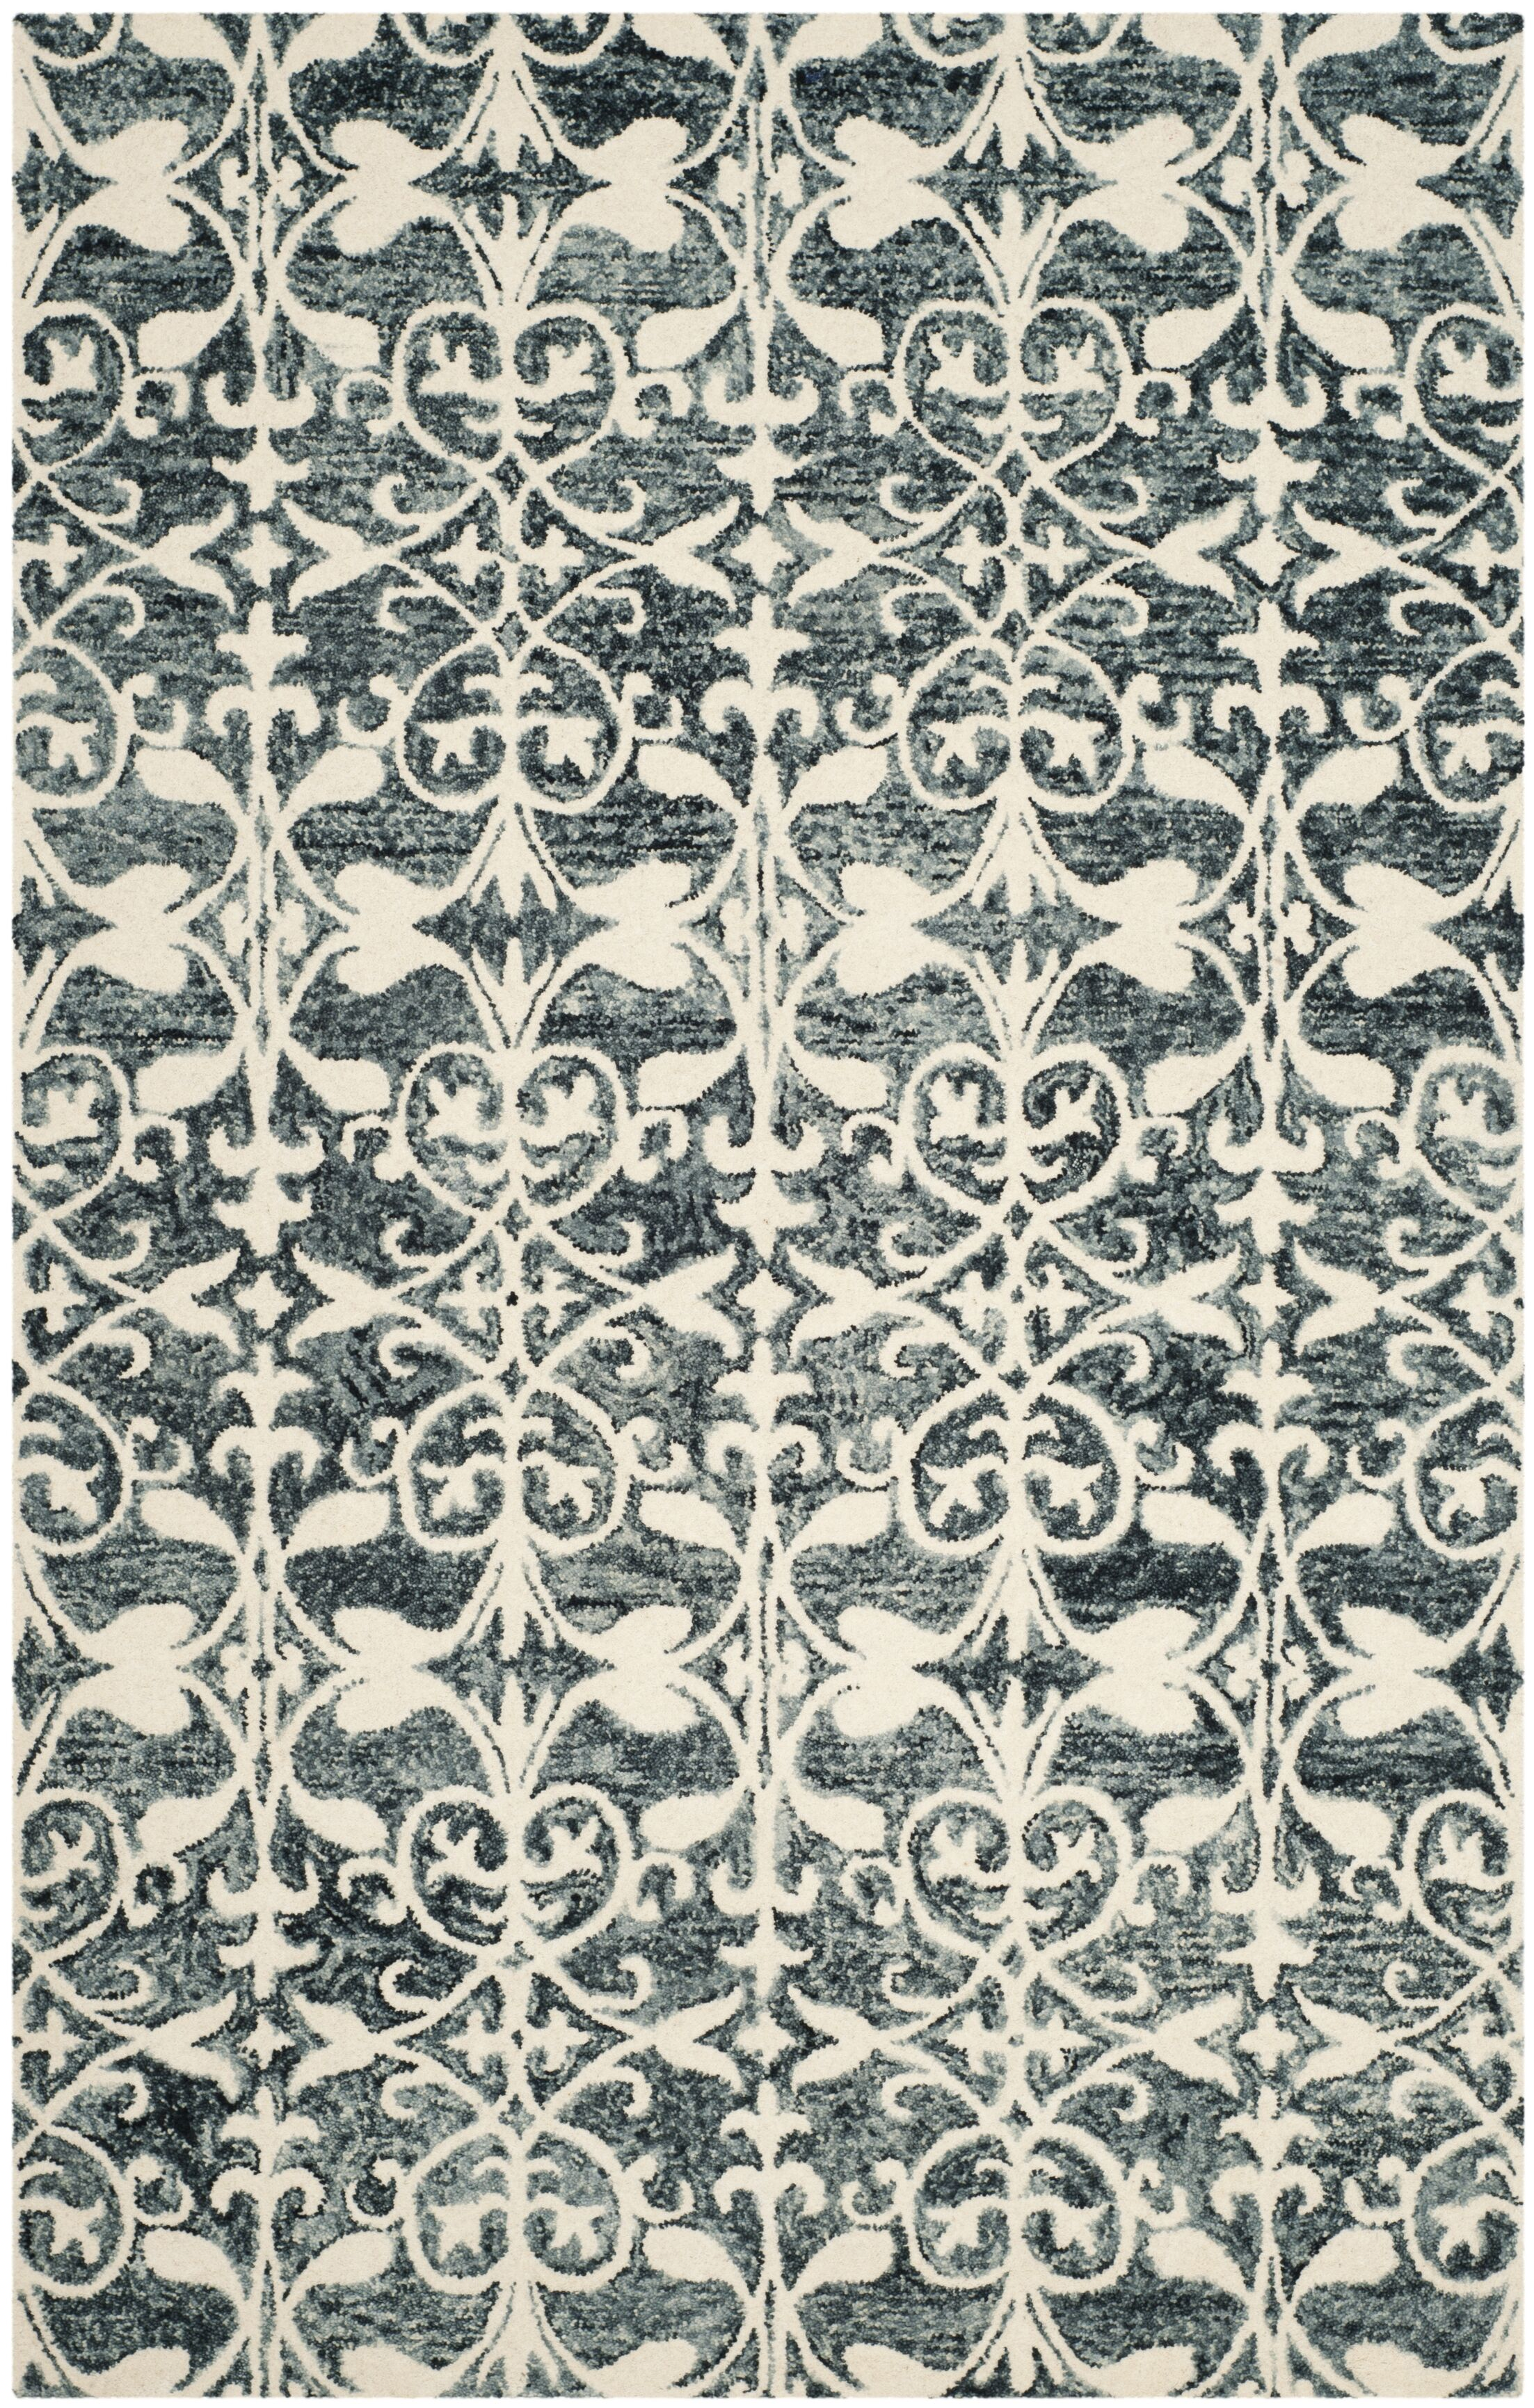 Greenmarket Hand-Tufted Charcoal/Ivory Area Rug Rug Size: Rectangle 8' x 10'